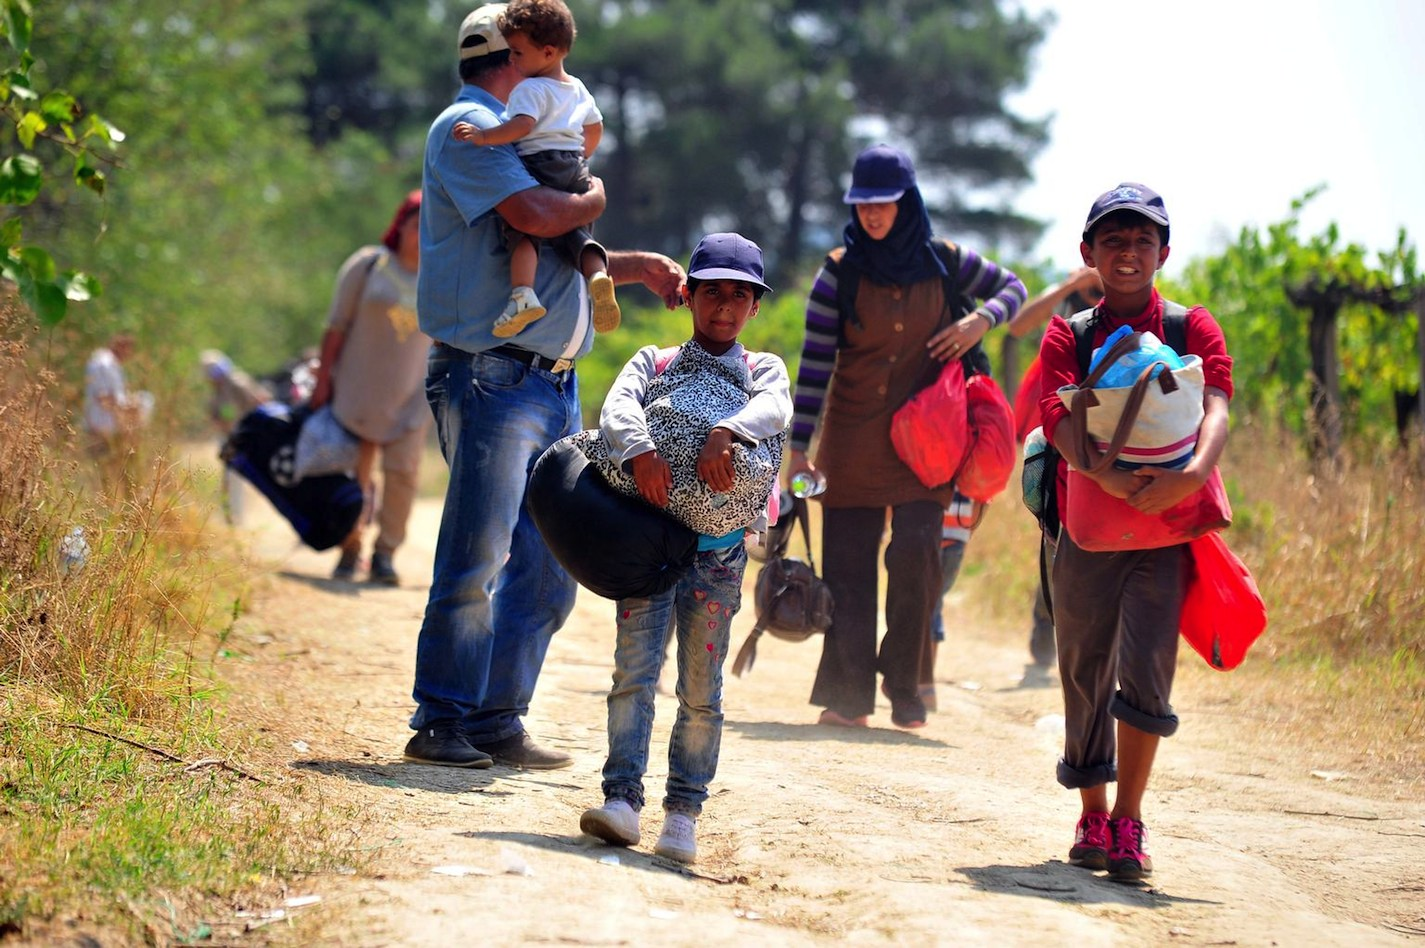 Migrant children, women and a man walk along a dusty path from the Greek border to the reception centre near the town of Gevgelija, Macedonia. Europe is struggling to handle the global migrant crisis exacerbated by conflict in the Middle East and North Af